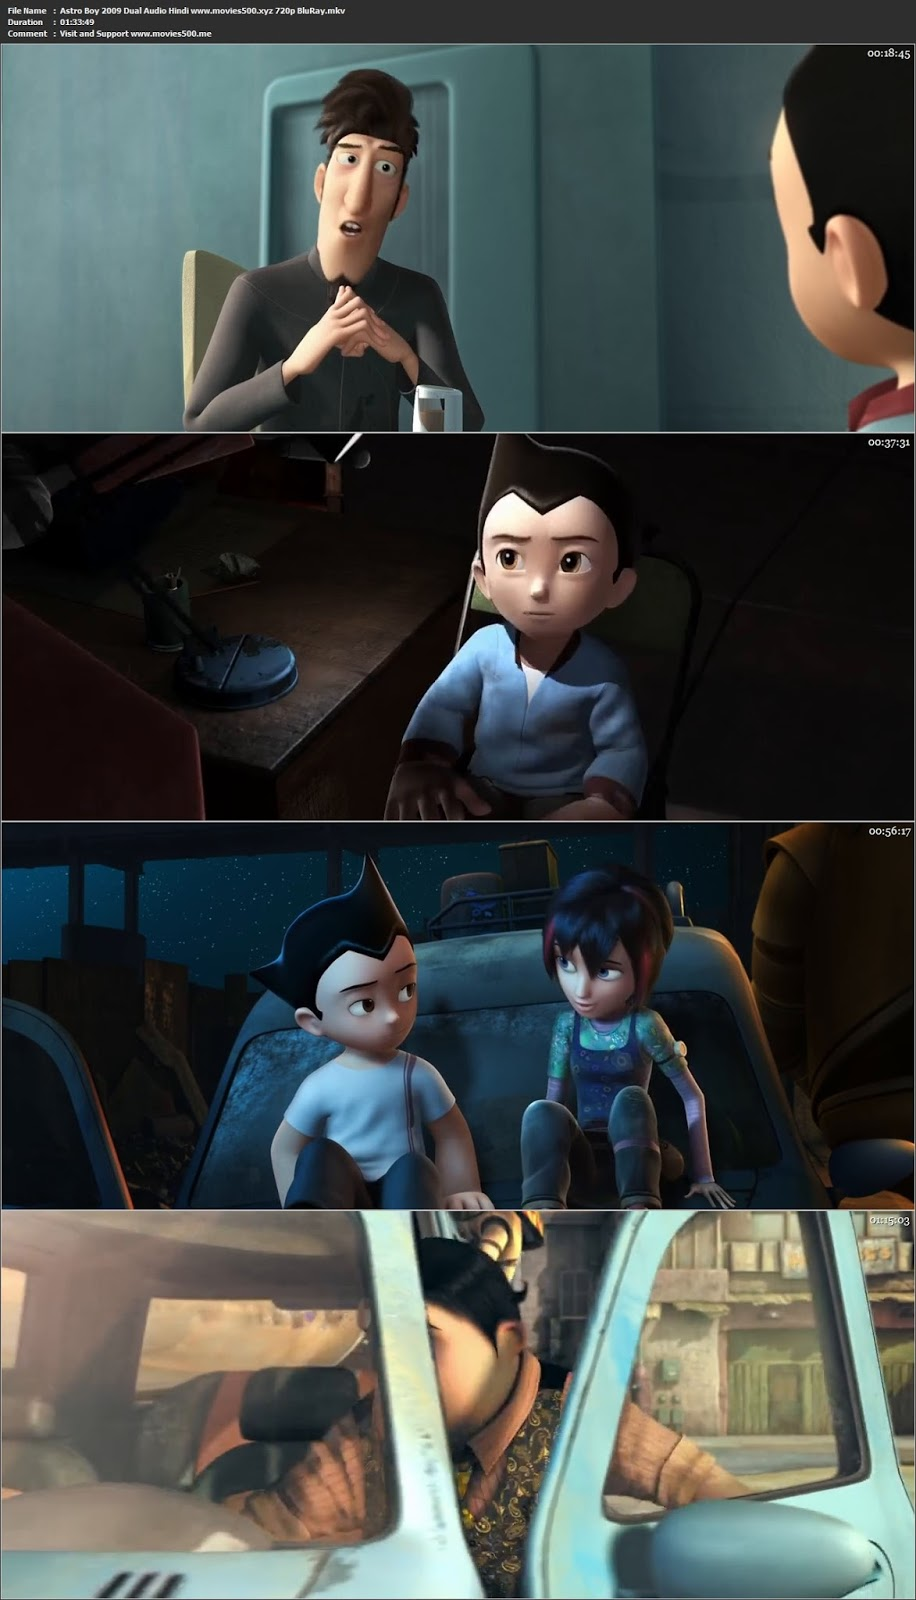 Astro Boy 2009 Dual Audio Hindi Full Movie BluRay 720p at 9966132.com